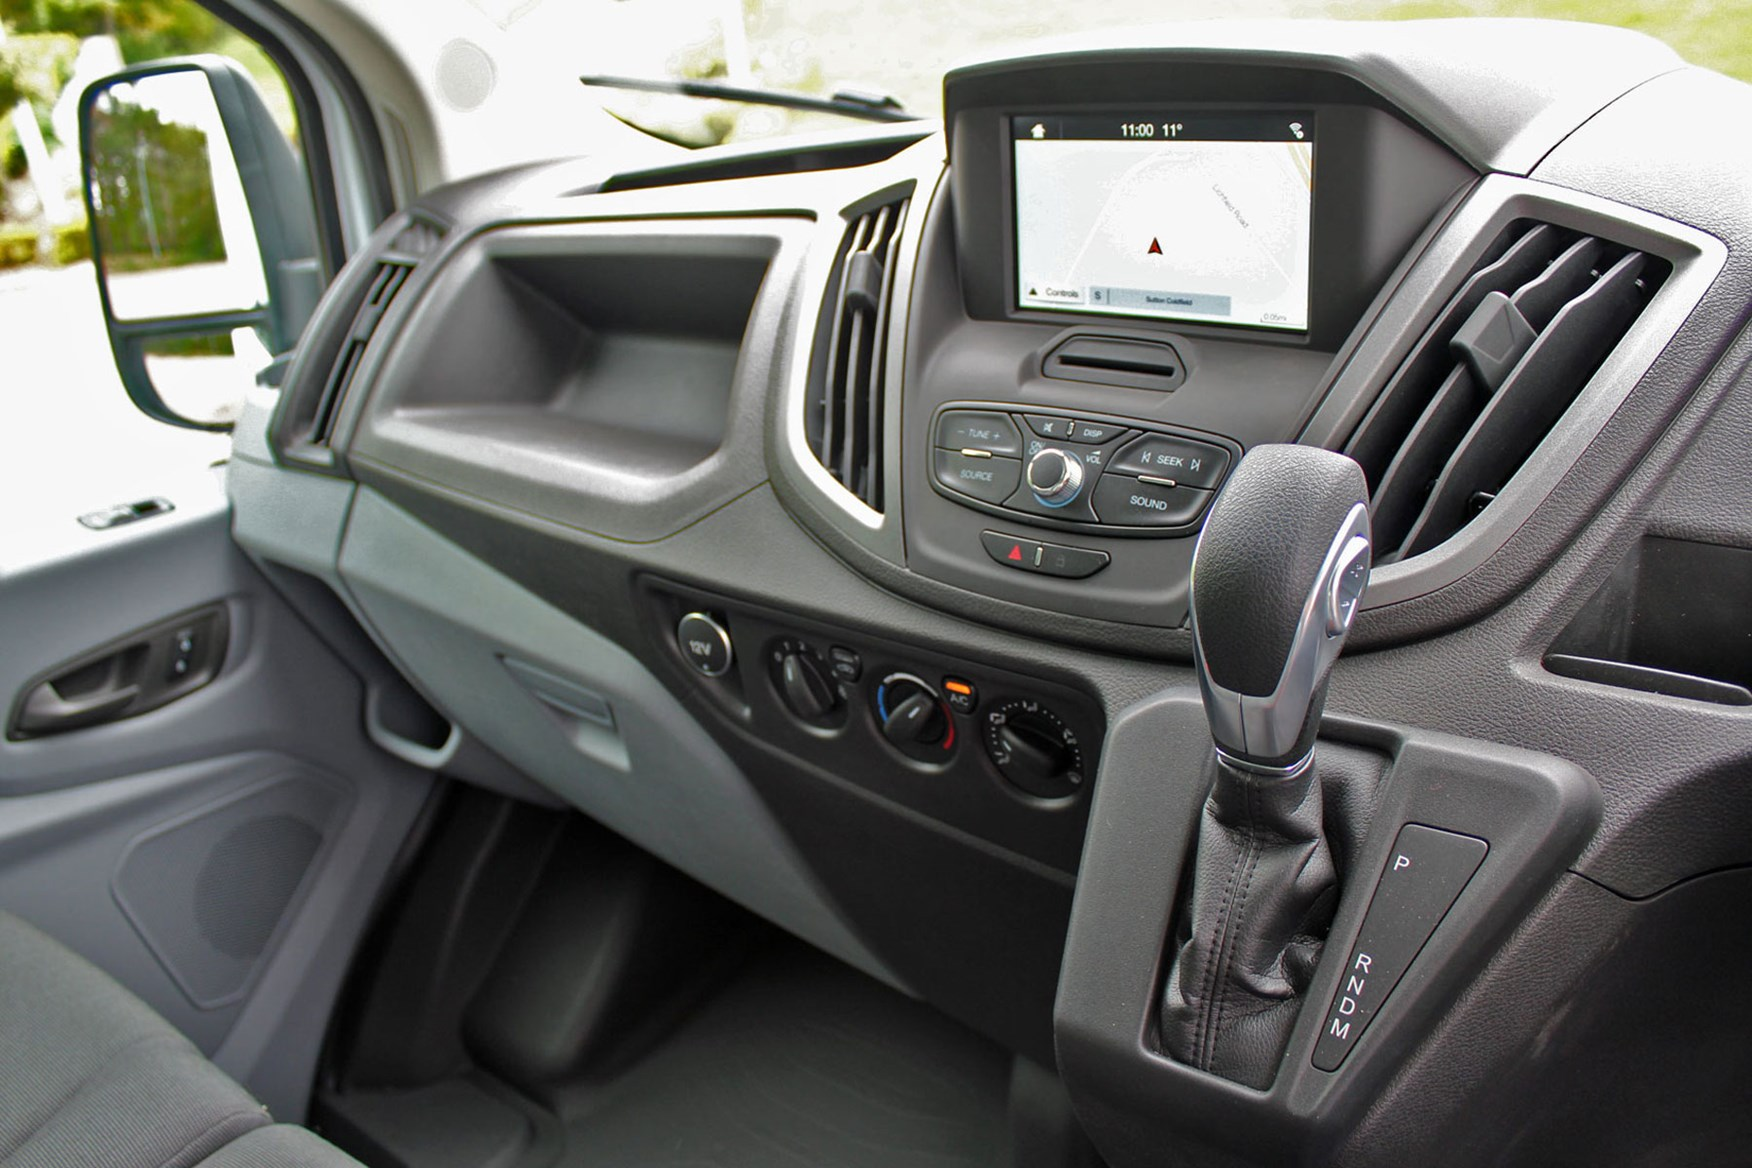 Ford Transit Luton review - automatic gearbox